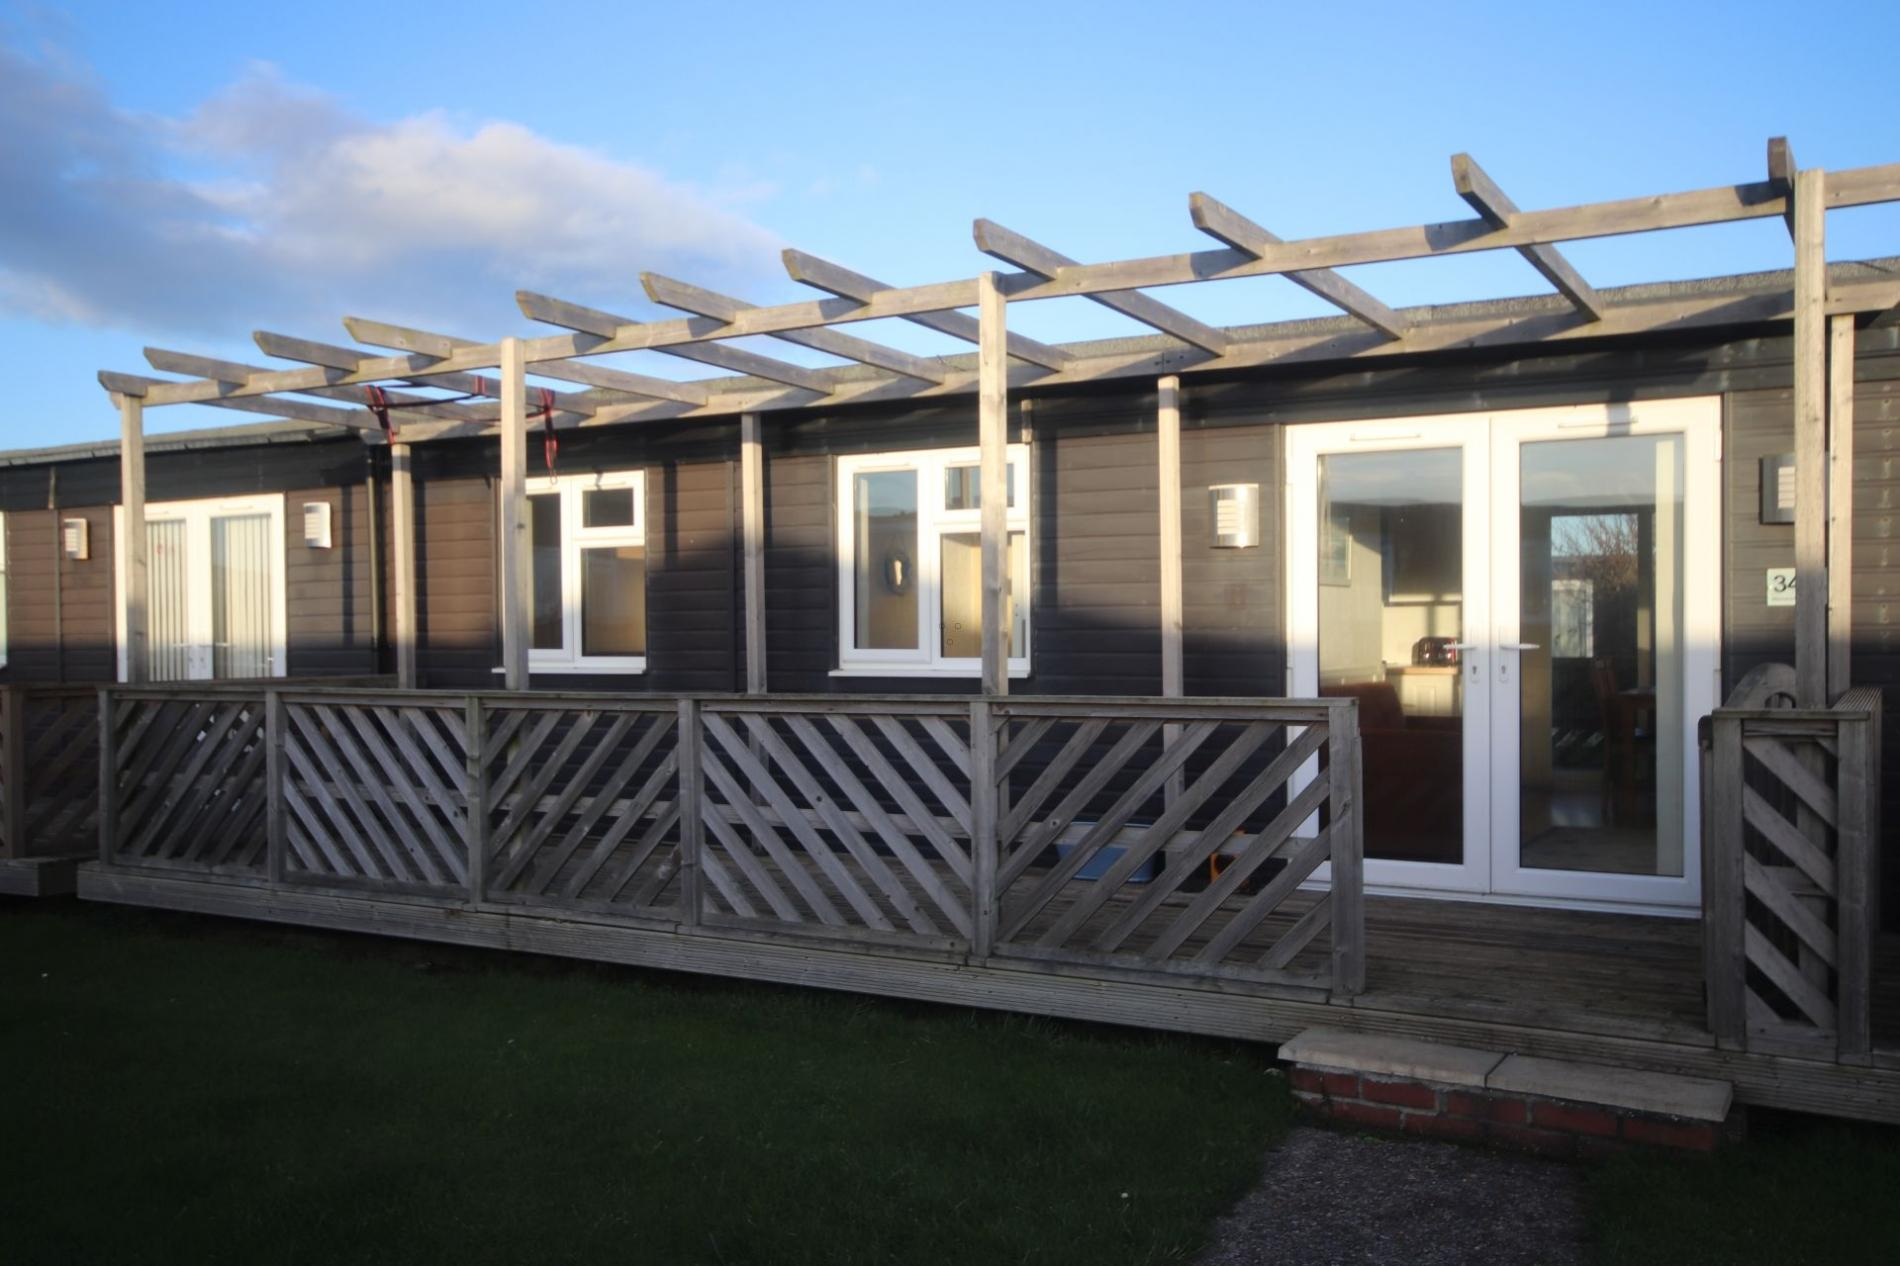 34H Medmerry Park 2 Bedroom Chalet Family Friendly